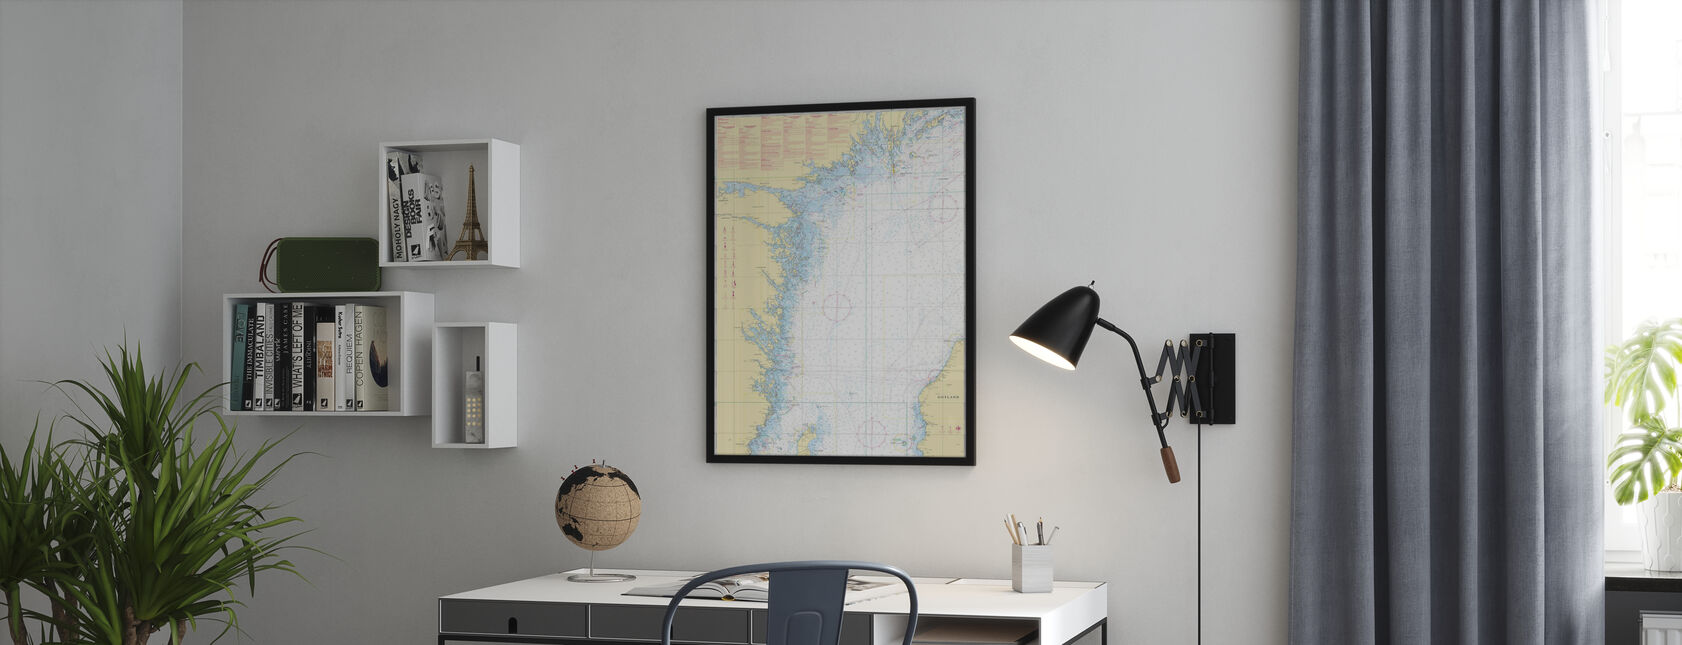 Sea Chart 72 - Oland - Landsort - Framed print - Office